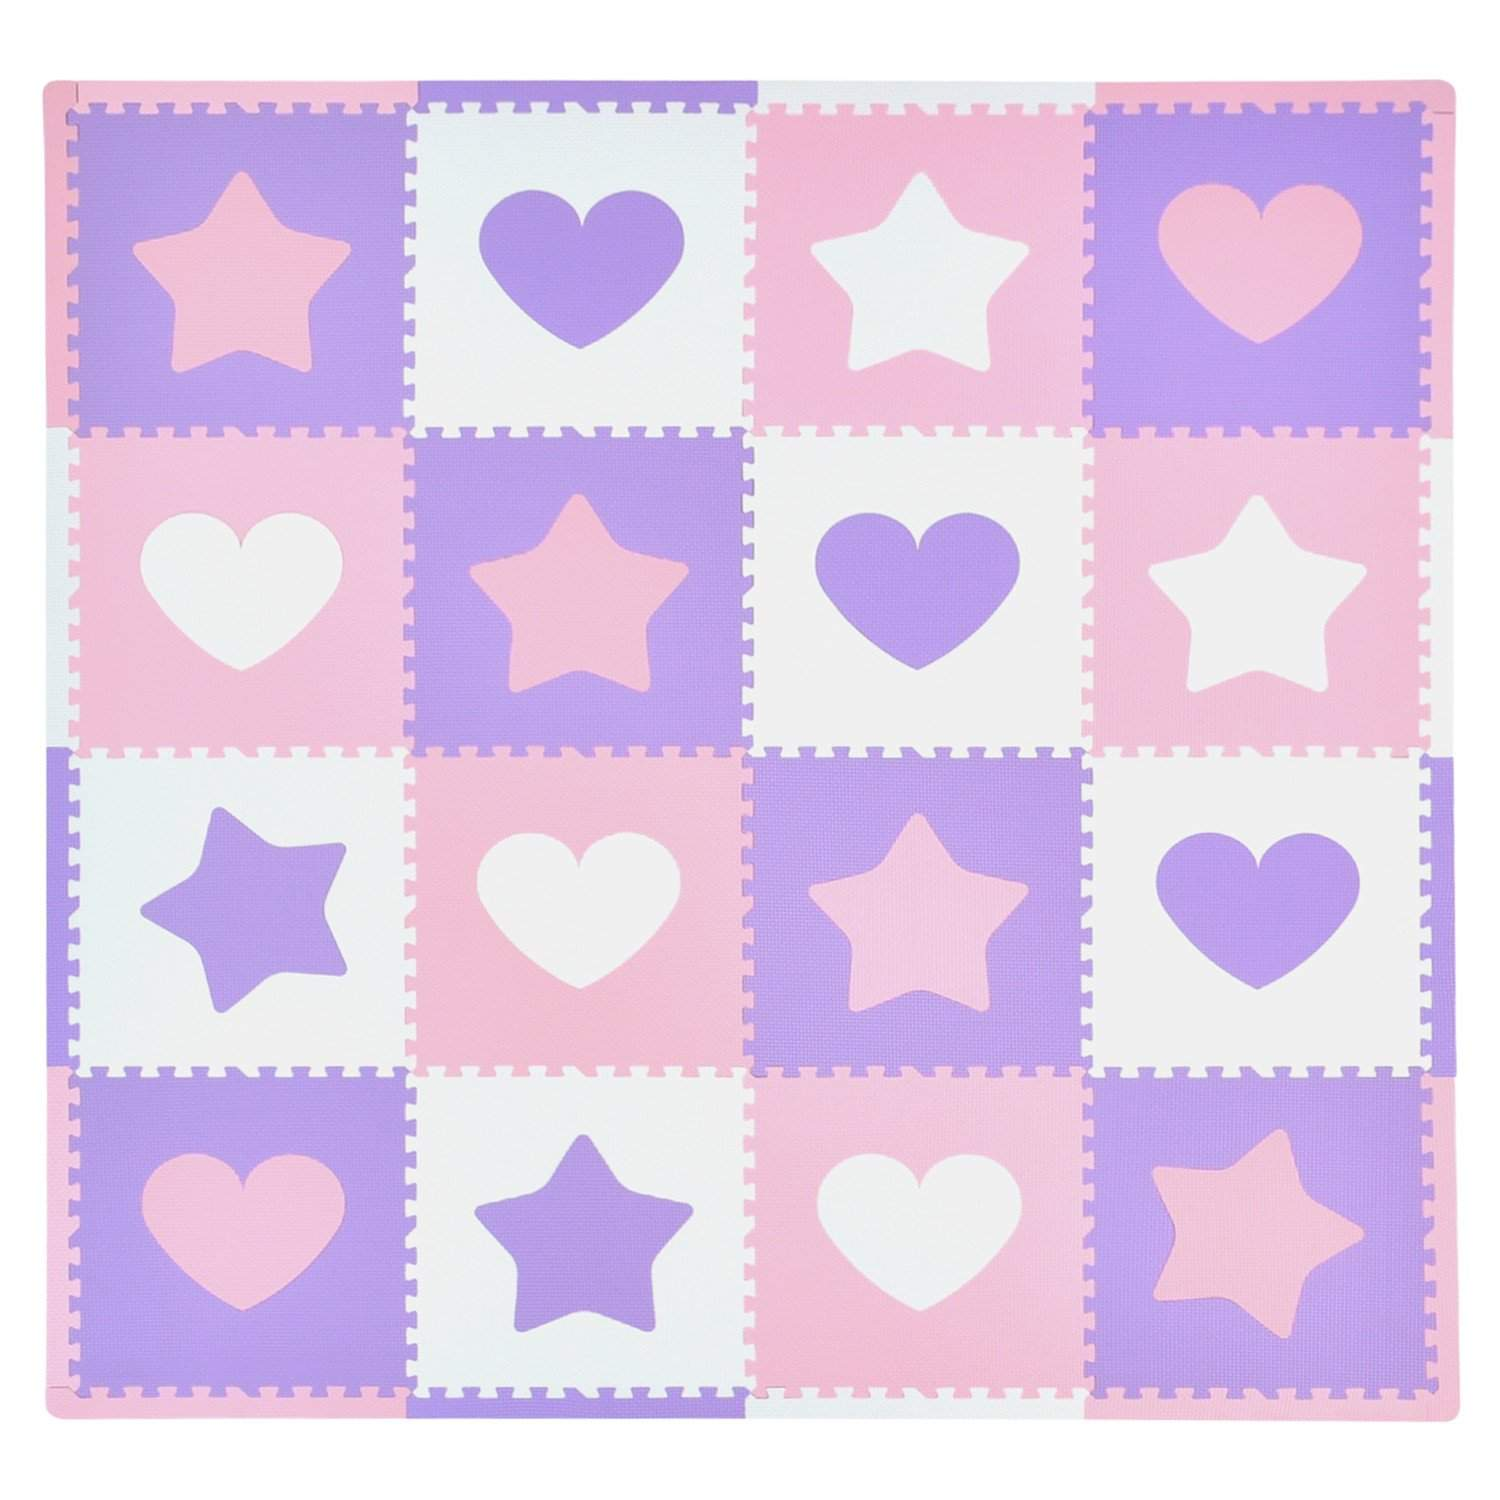 16 Piece Foam Playmat Set, Hearts & Stars Playmats Tadpoles Bedding Pink/Purple/White